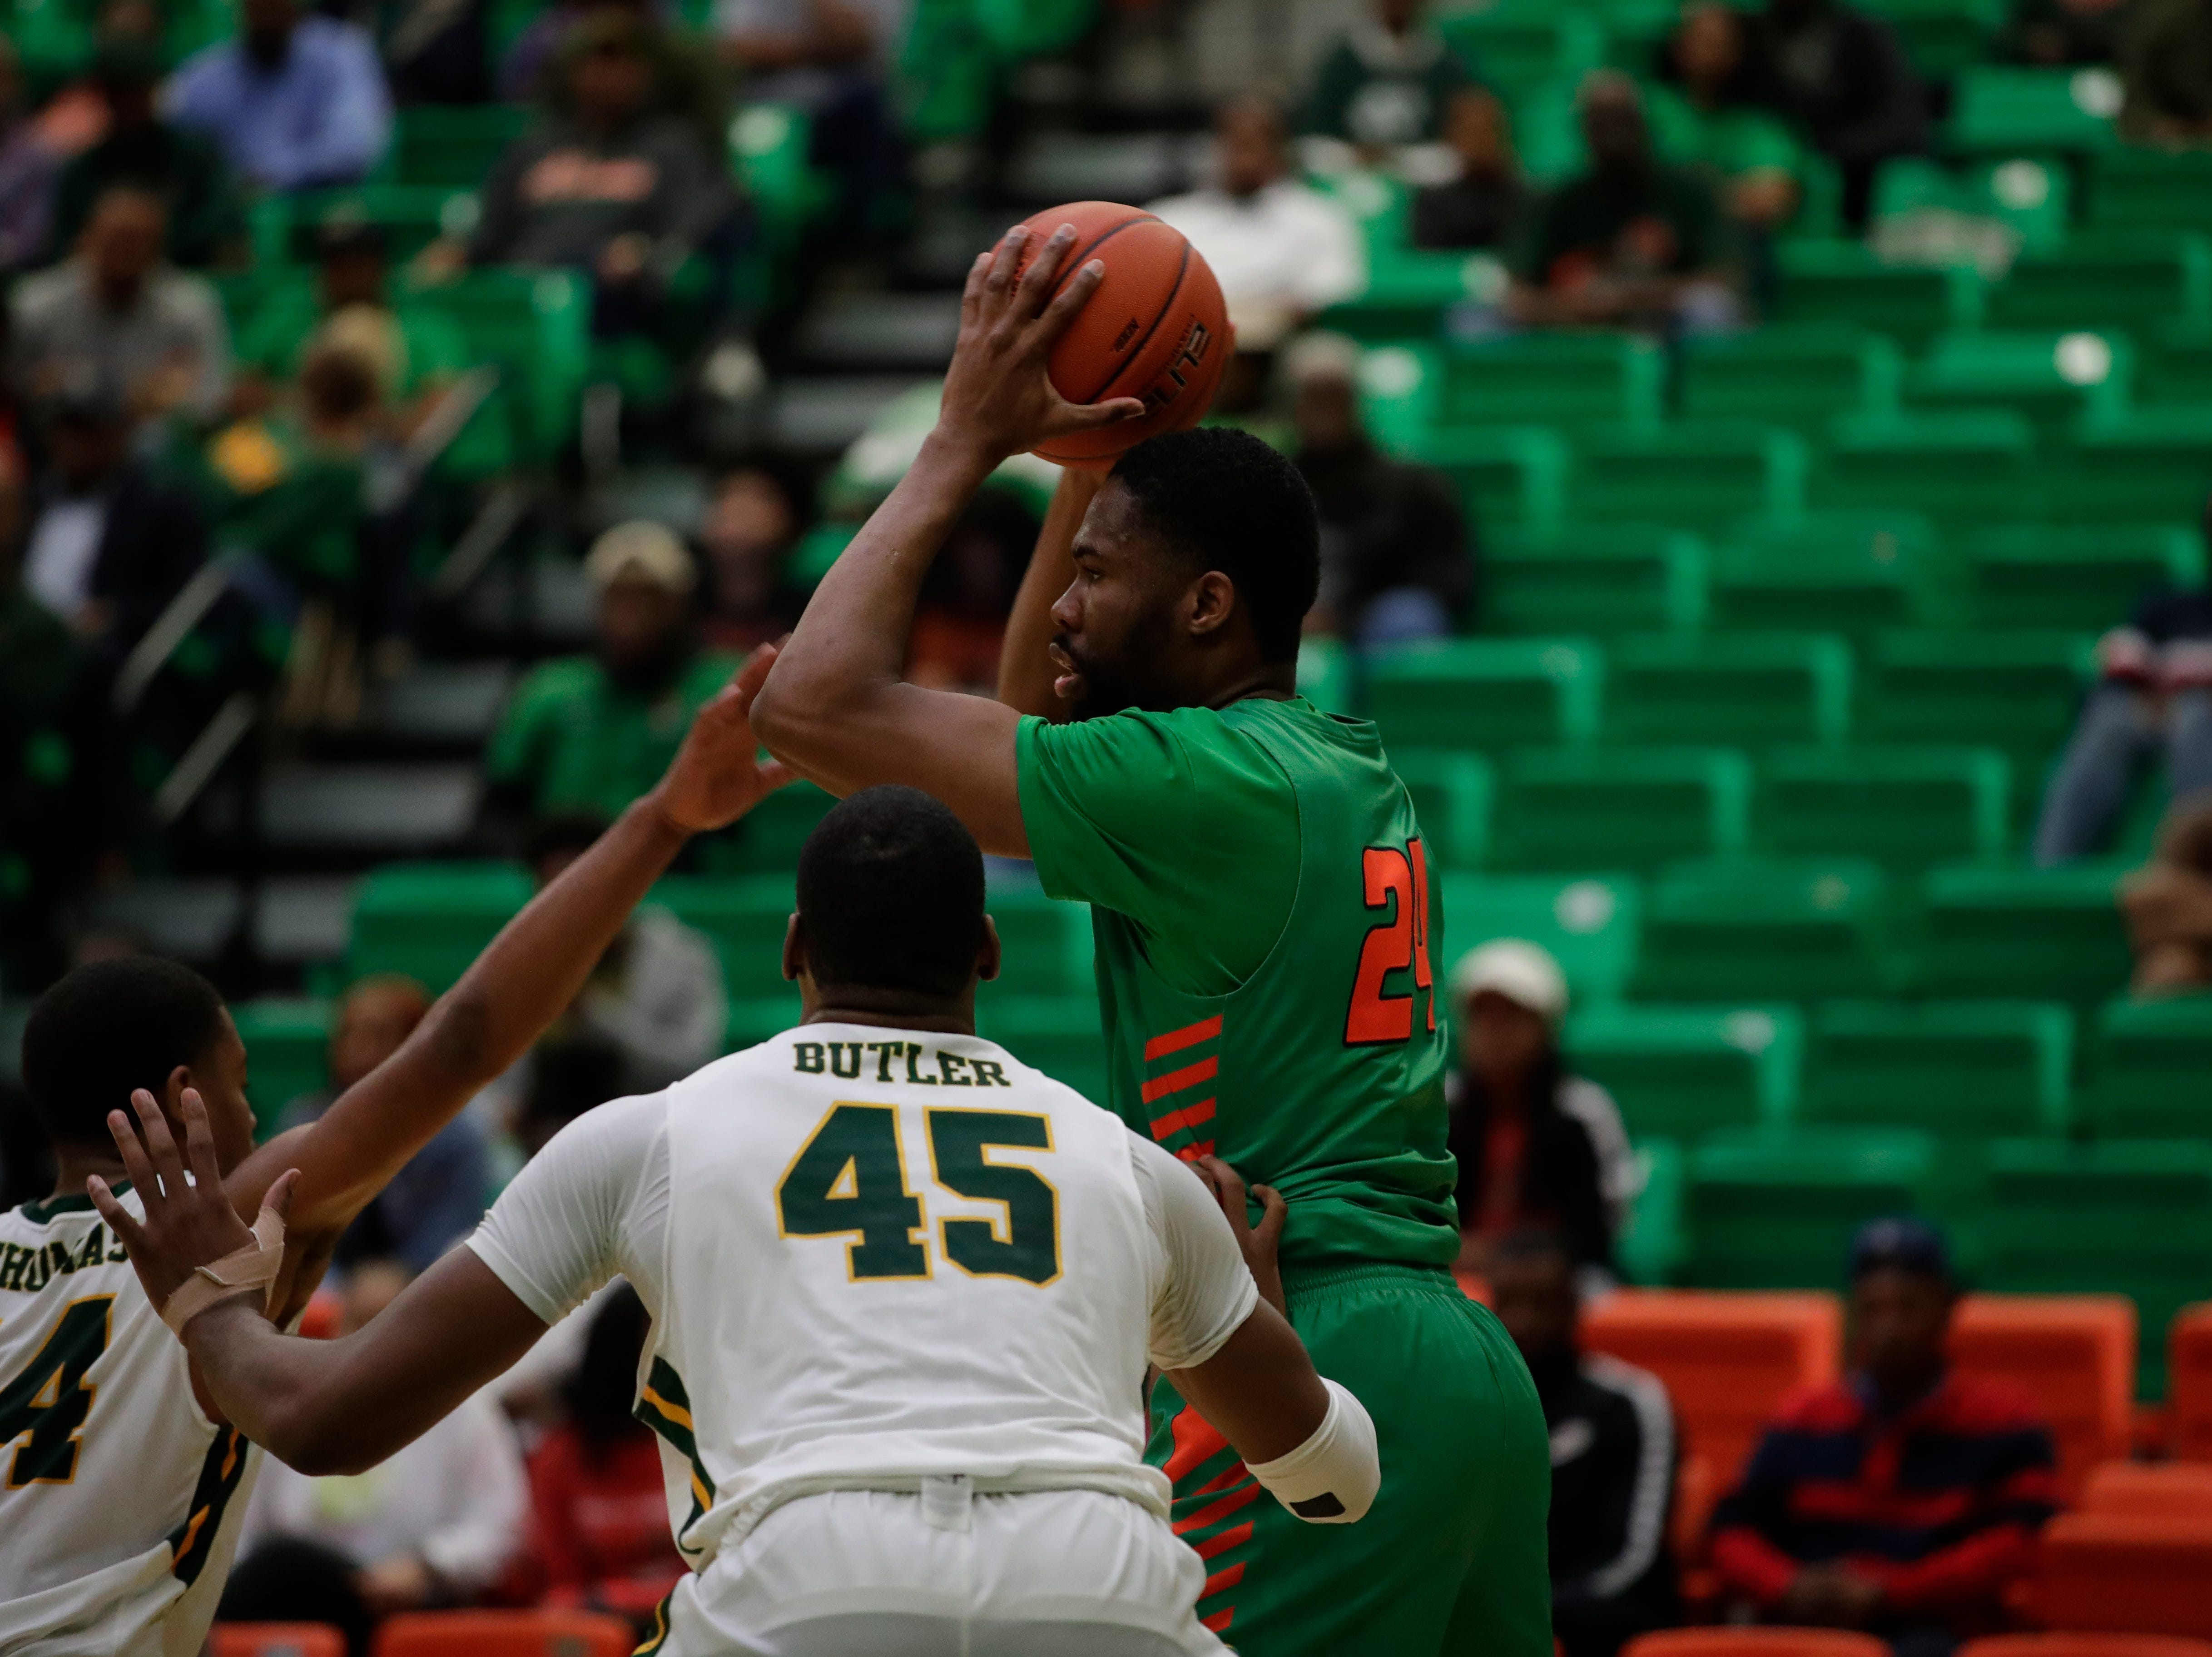 Florida A&M Rattlers forward Ifeanyi Umezurike (24) looks to pass during a game between FAMU and Norfolk State at the Alfred Lawson Jr. Multipurpose Center Monday, Feb. 11, 2019.